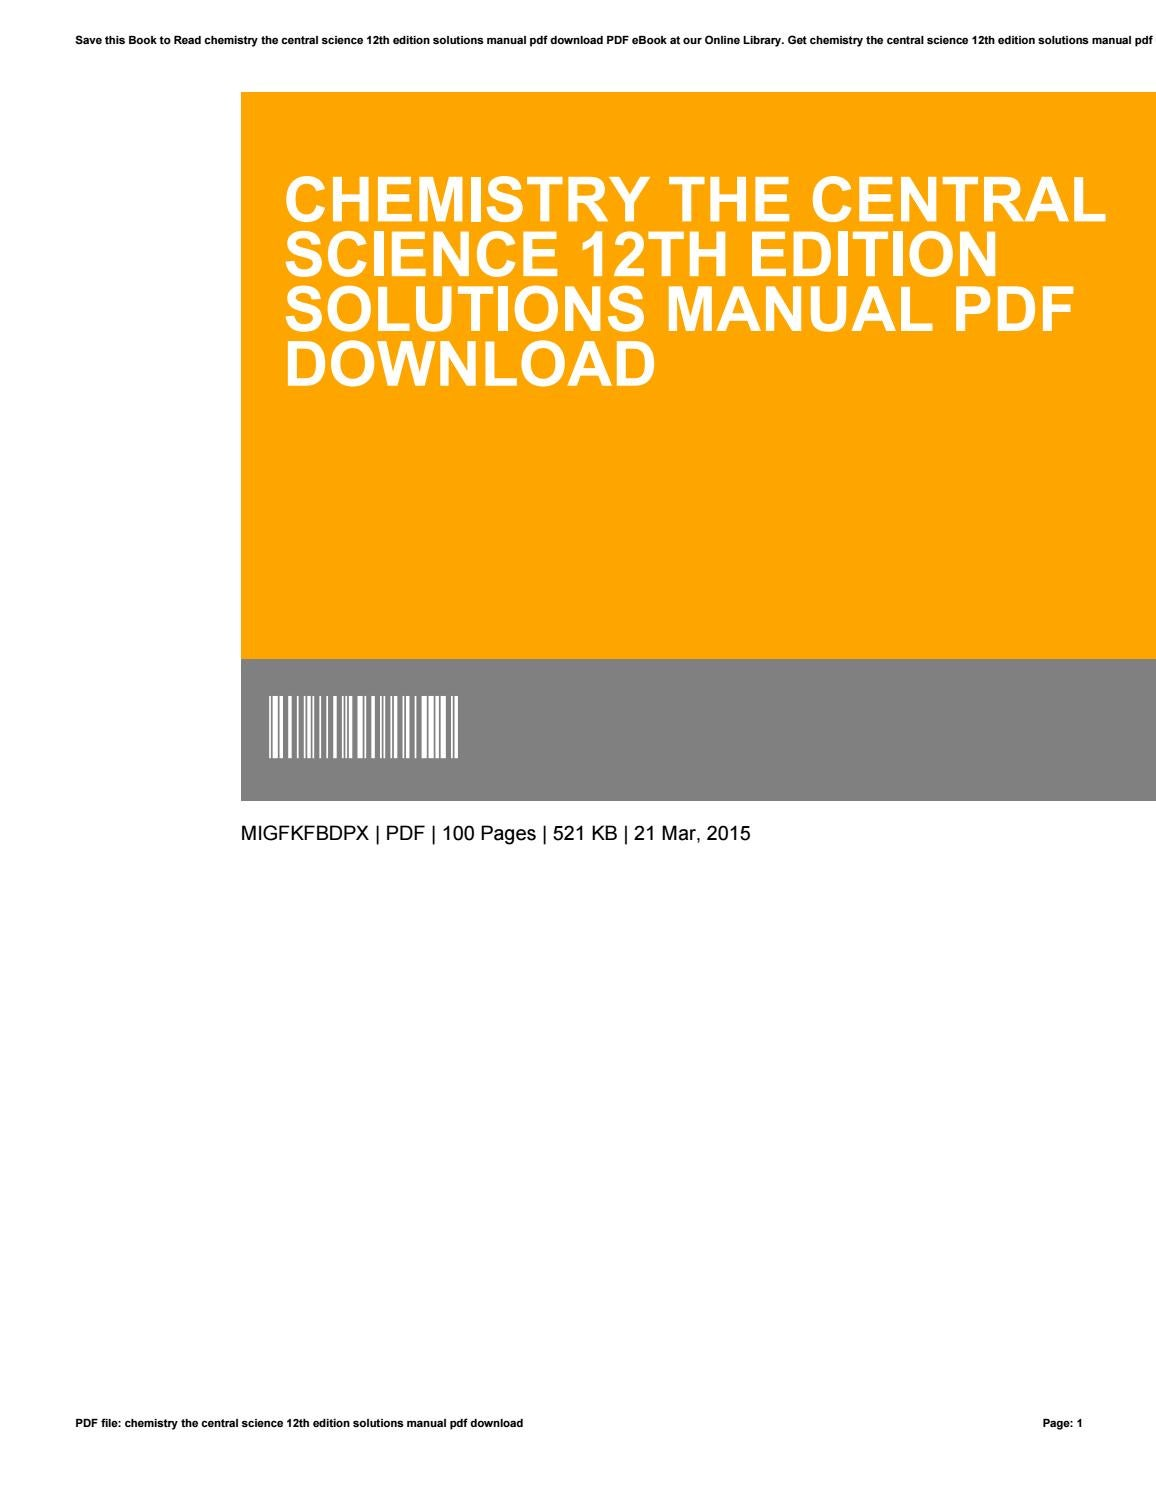 Chemistry the central science 12th edition solutions manual pdf download by  CalvinMcGeehan4118 - issuu